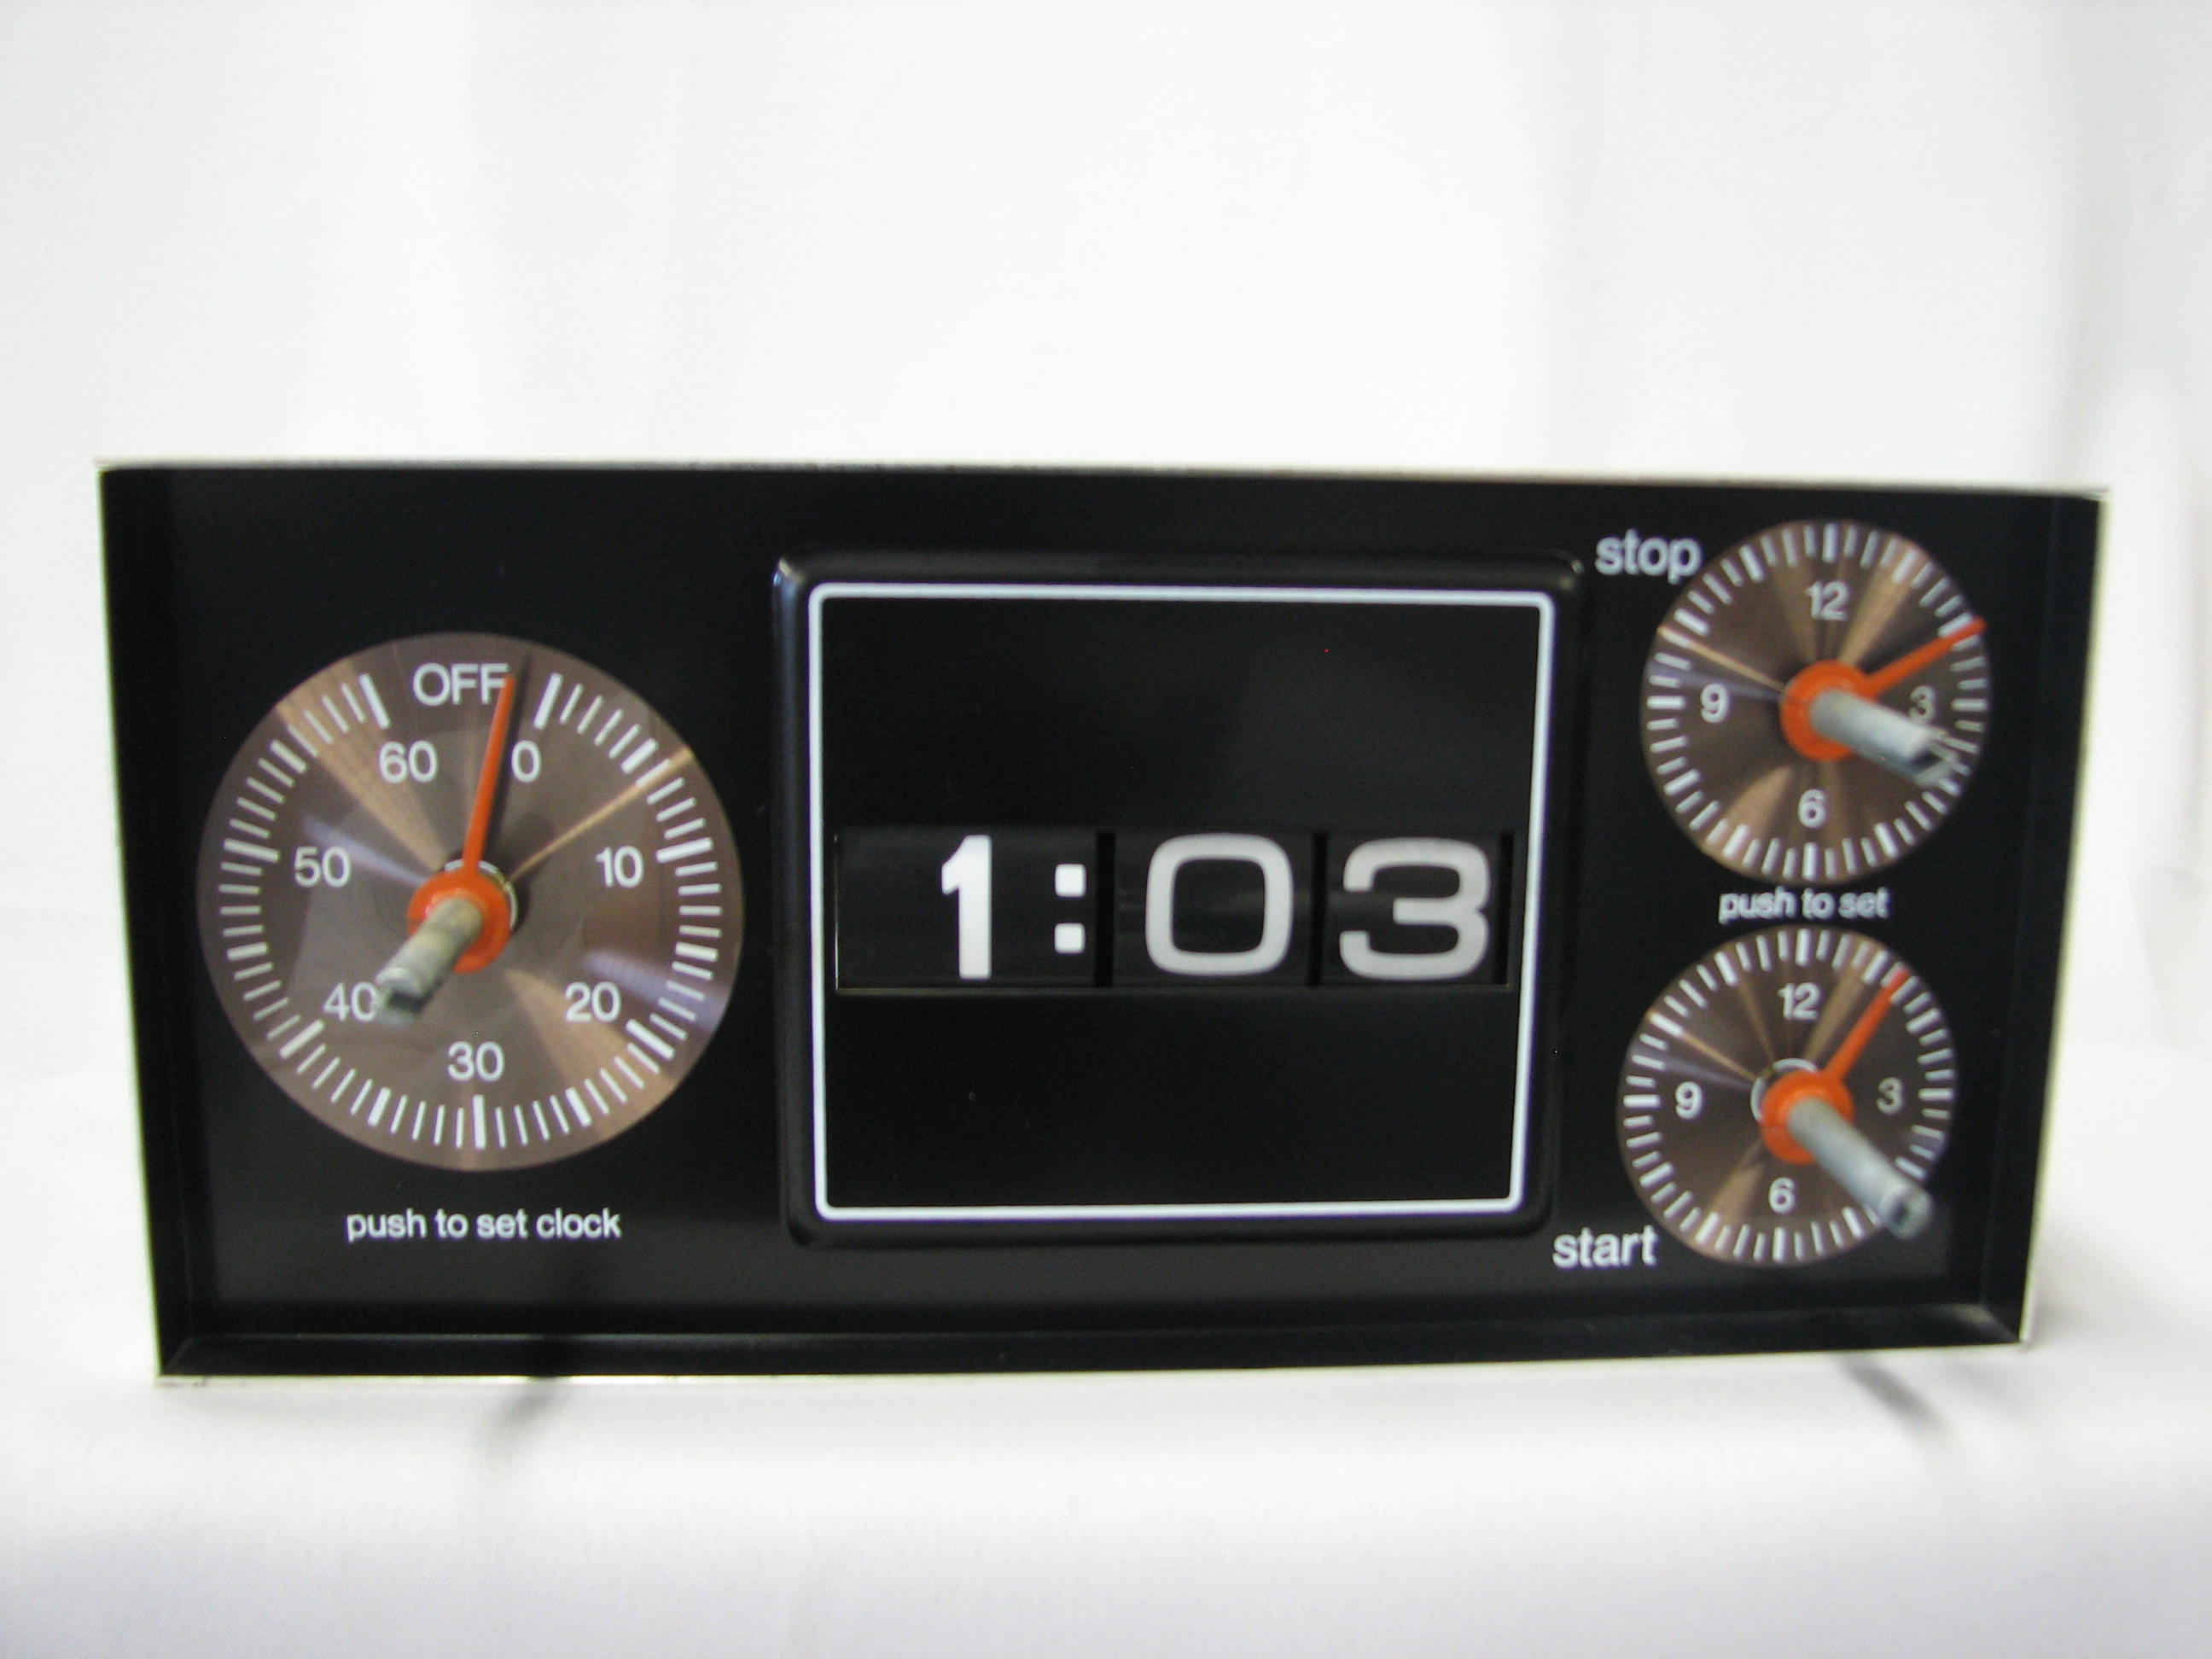 Stove Clock Repairs, Oven Timer Repairs, Range Timer Repair